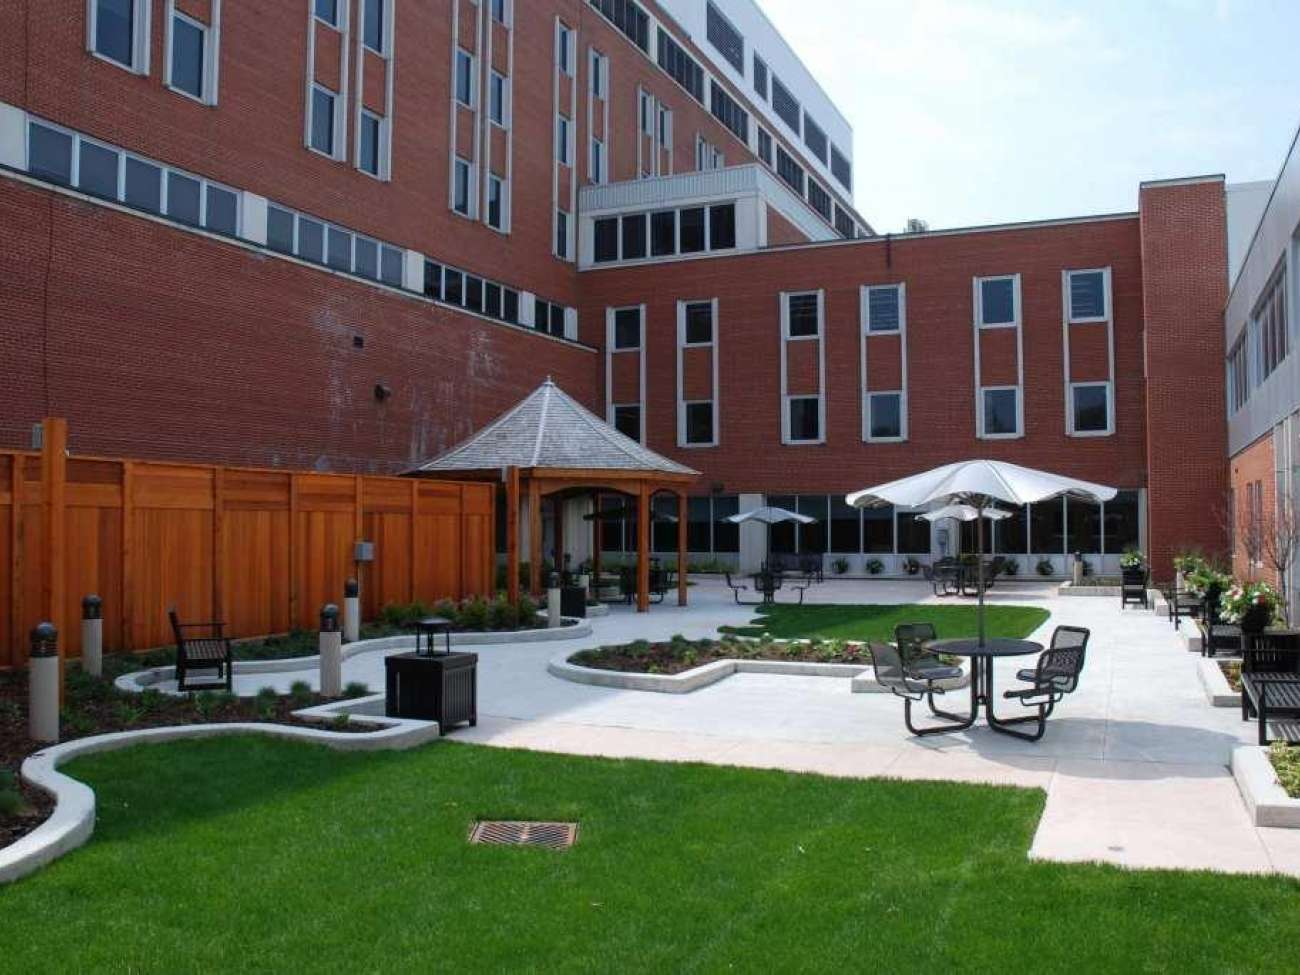 A welcoming courtyard for patients in mental health